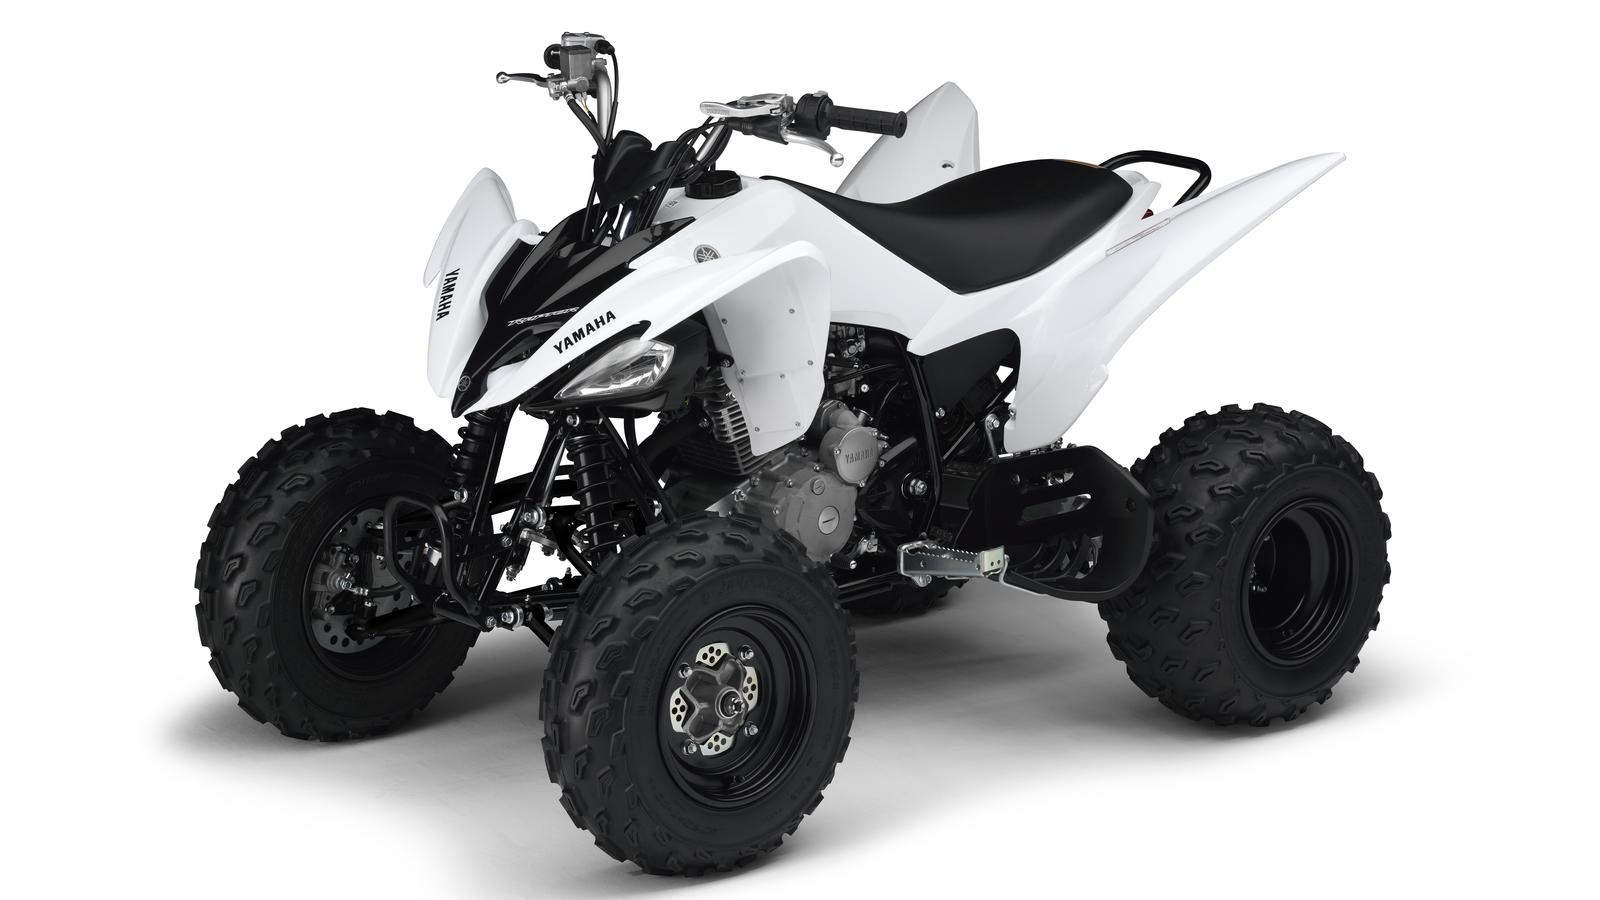 YAMAHA YFM 250 R Raptor  2011 photo 4